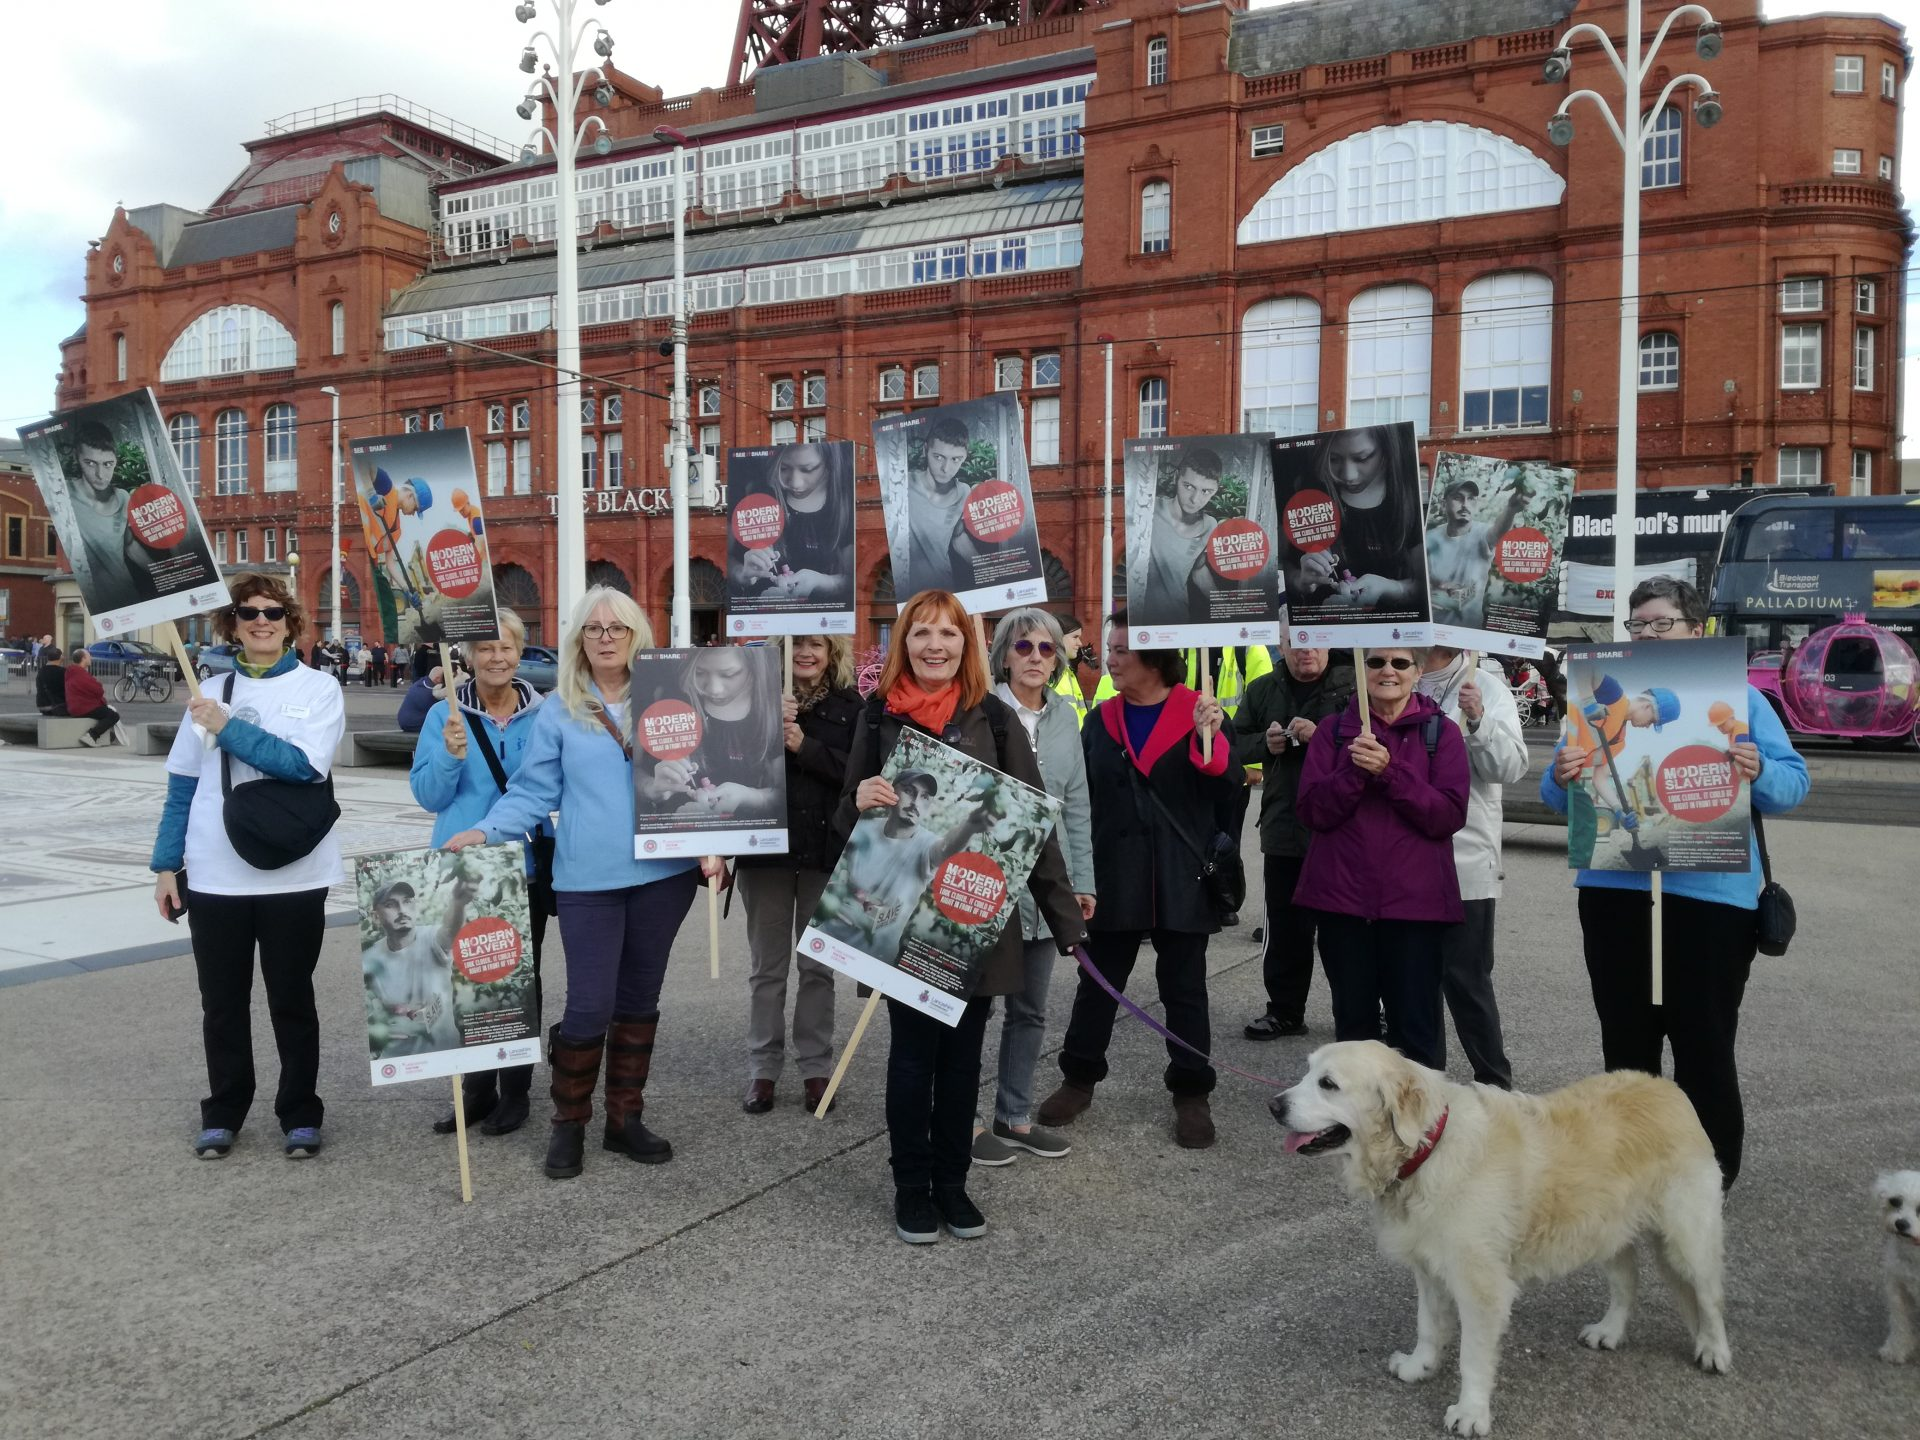 Members from the region {and dogs!) off on a march to raise awareness of human trafficking.